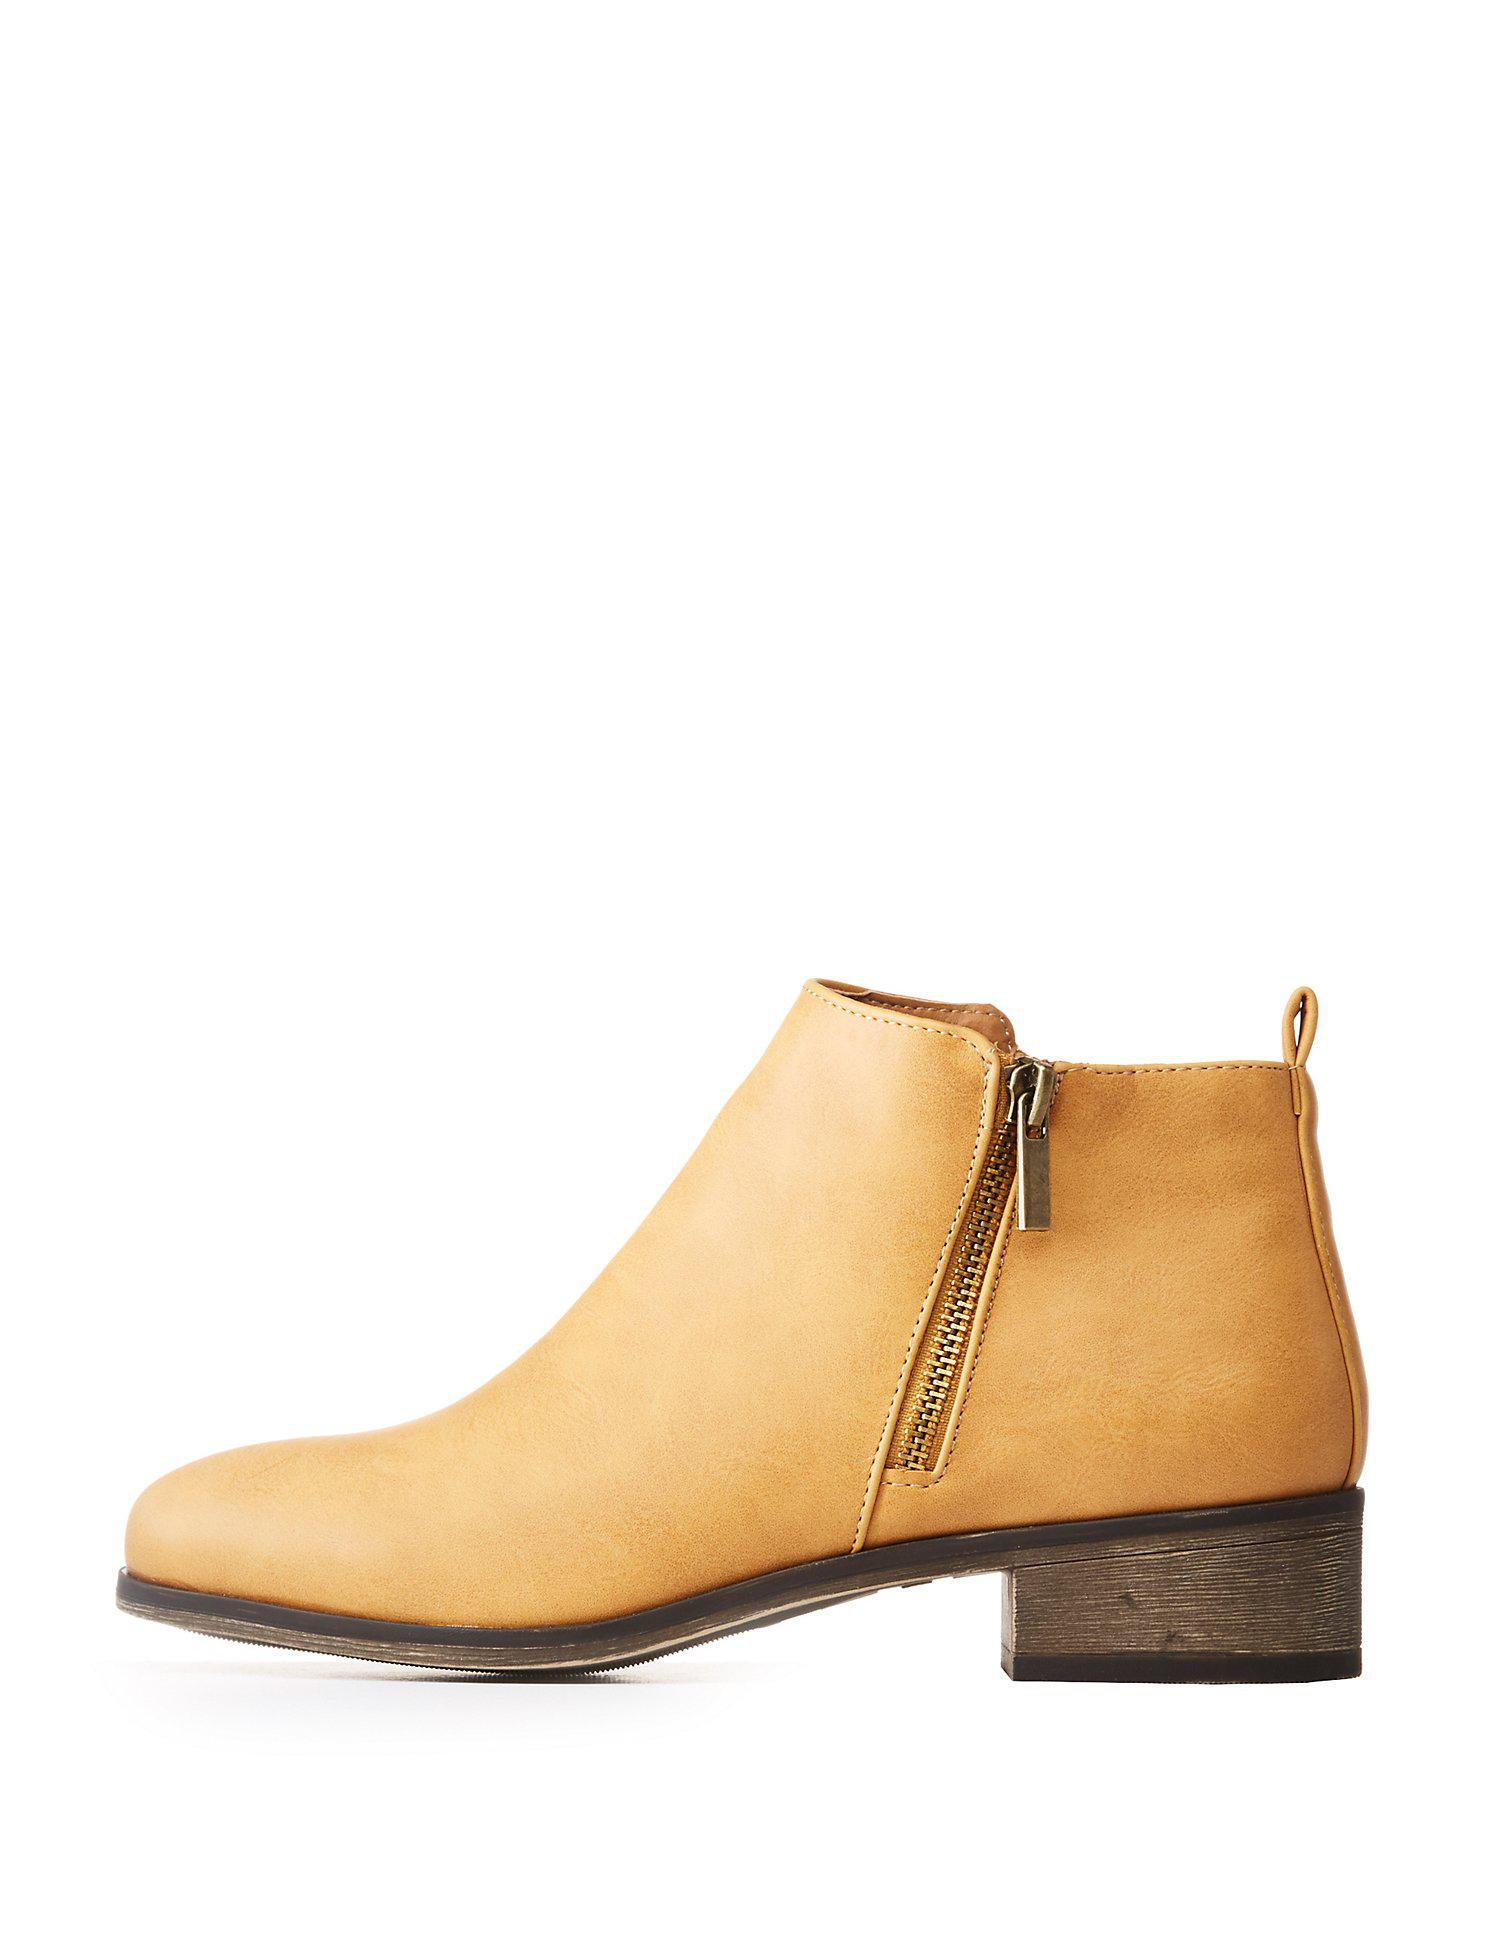 fdf9c3aedebd Lyst - Charlotte Russe Zip Up Ankle Booties in Natural